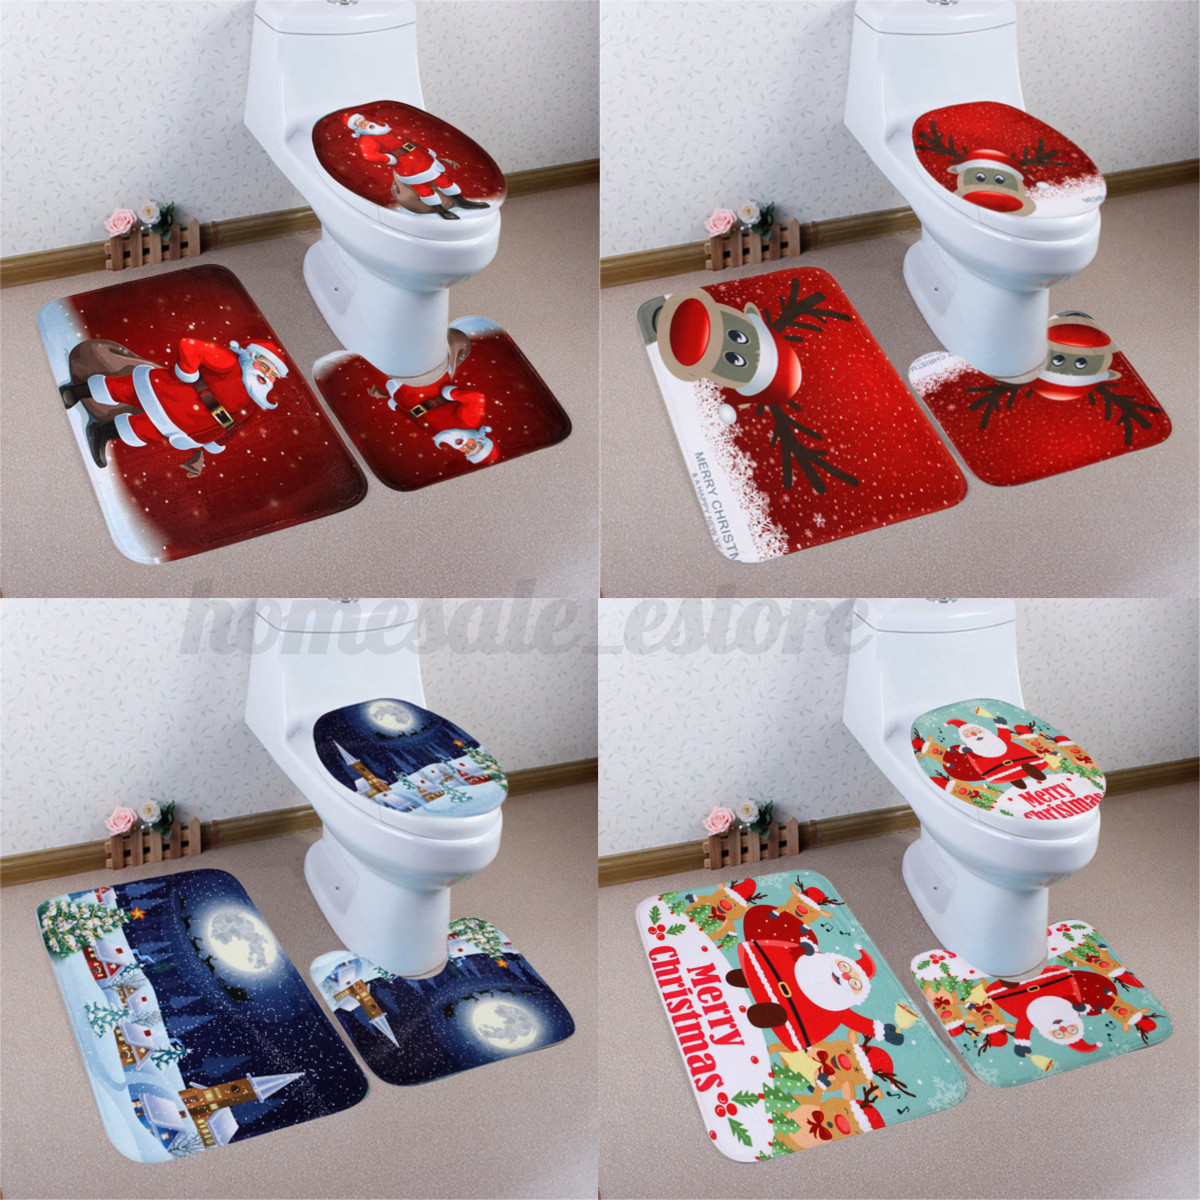 3Pcs Set Christmas Snowman Santa Toilet Seat Cover Rug Bathroom